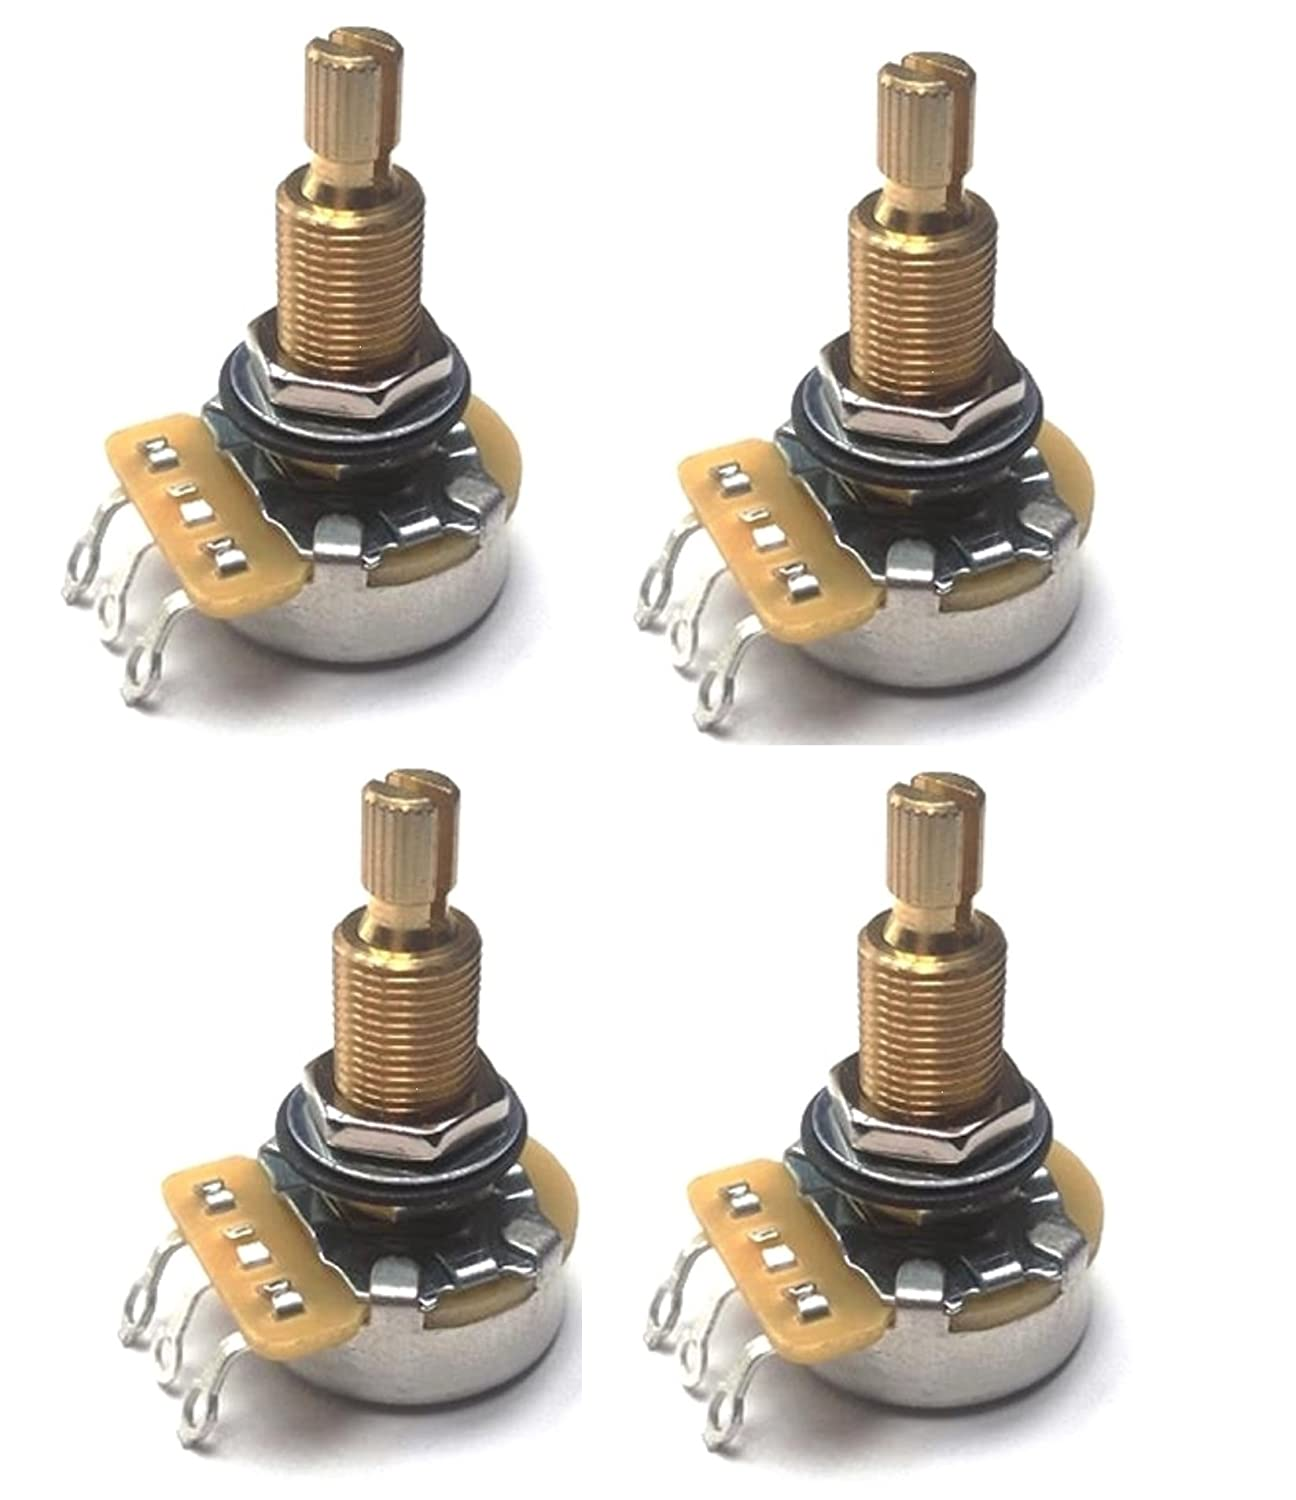 Cts Taot Custom 525k Long Shaft Potentiometers 5 Rigtalk O View Topic Help Please Gibson Switchcraft 3way Toggle Tolerance All Pots Meter 500k 550k Set Of 4 4x Musical Instruments